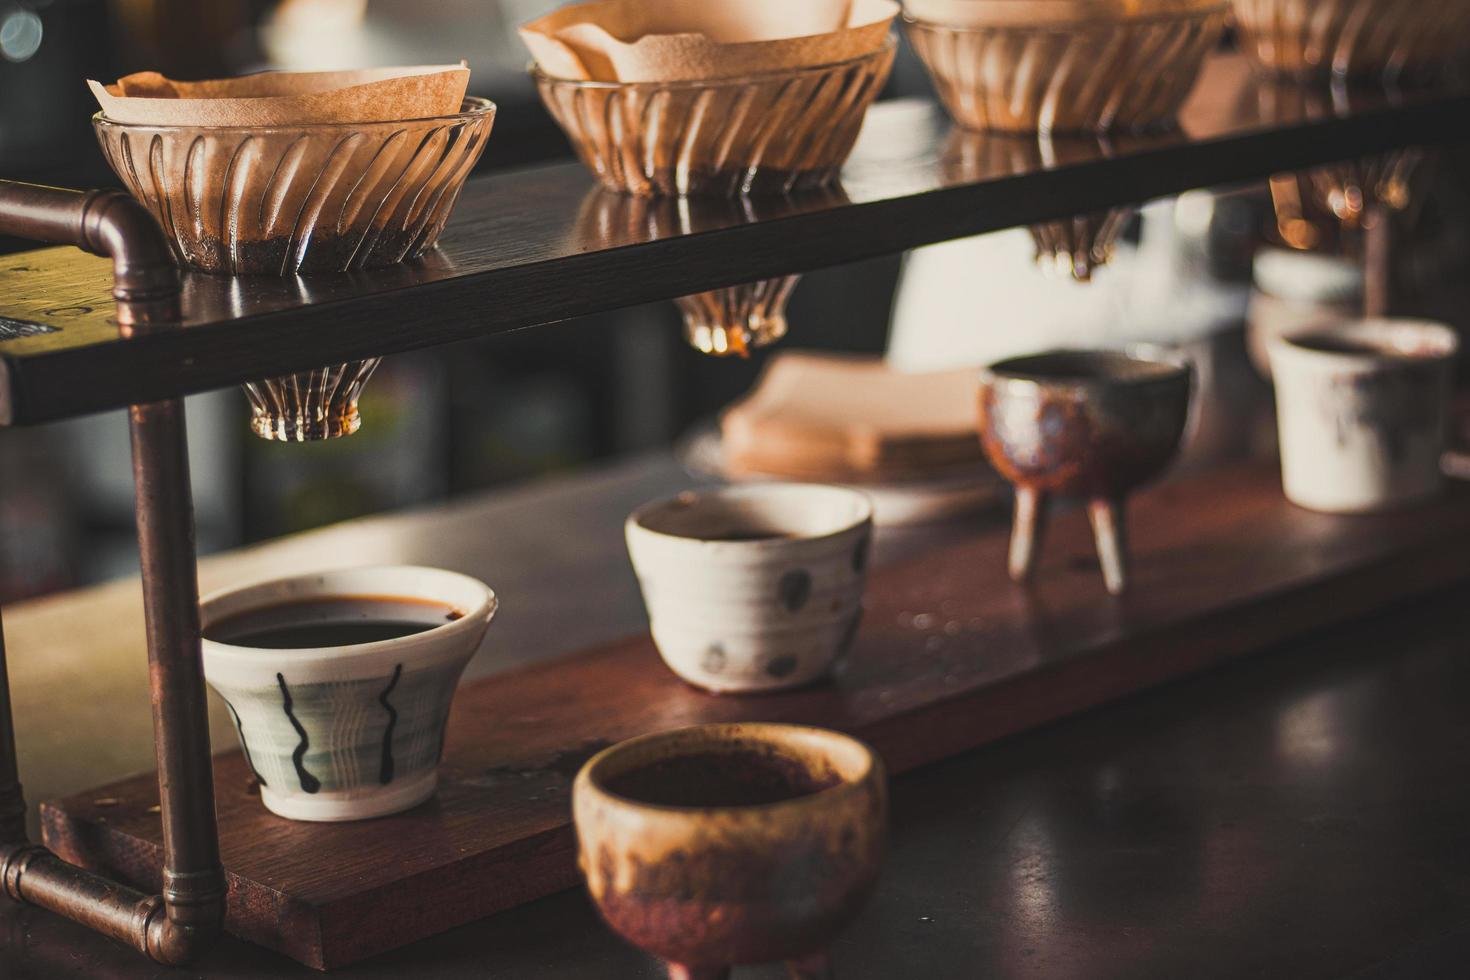 Close-up of pour over coffee photo